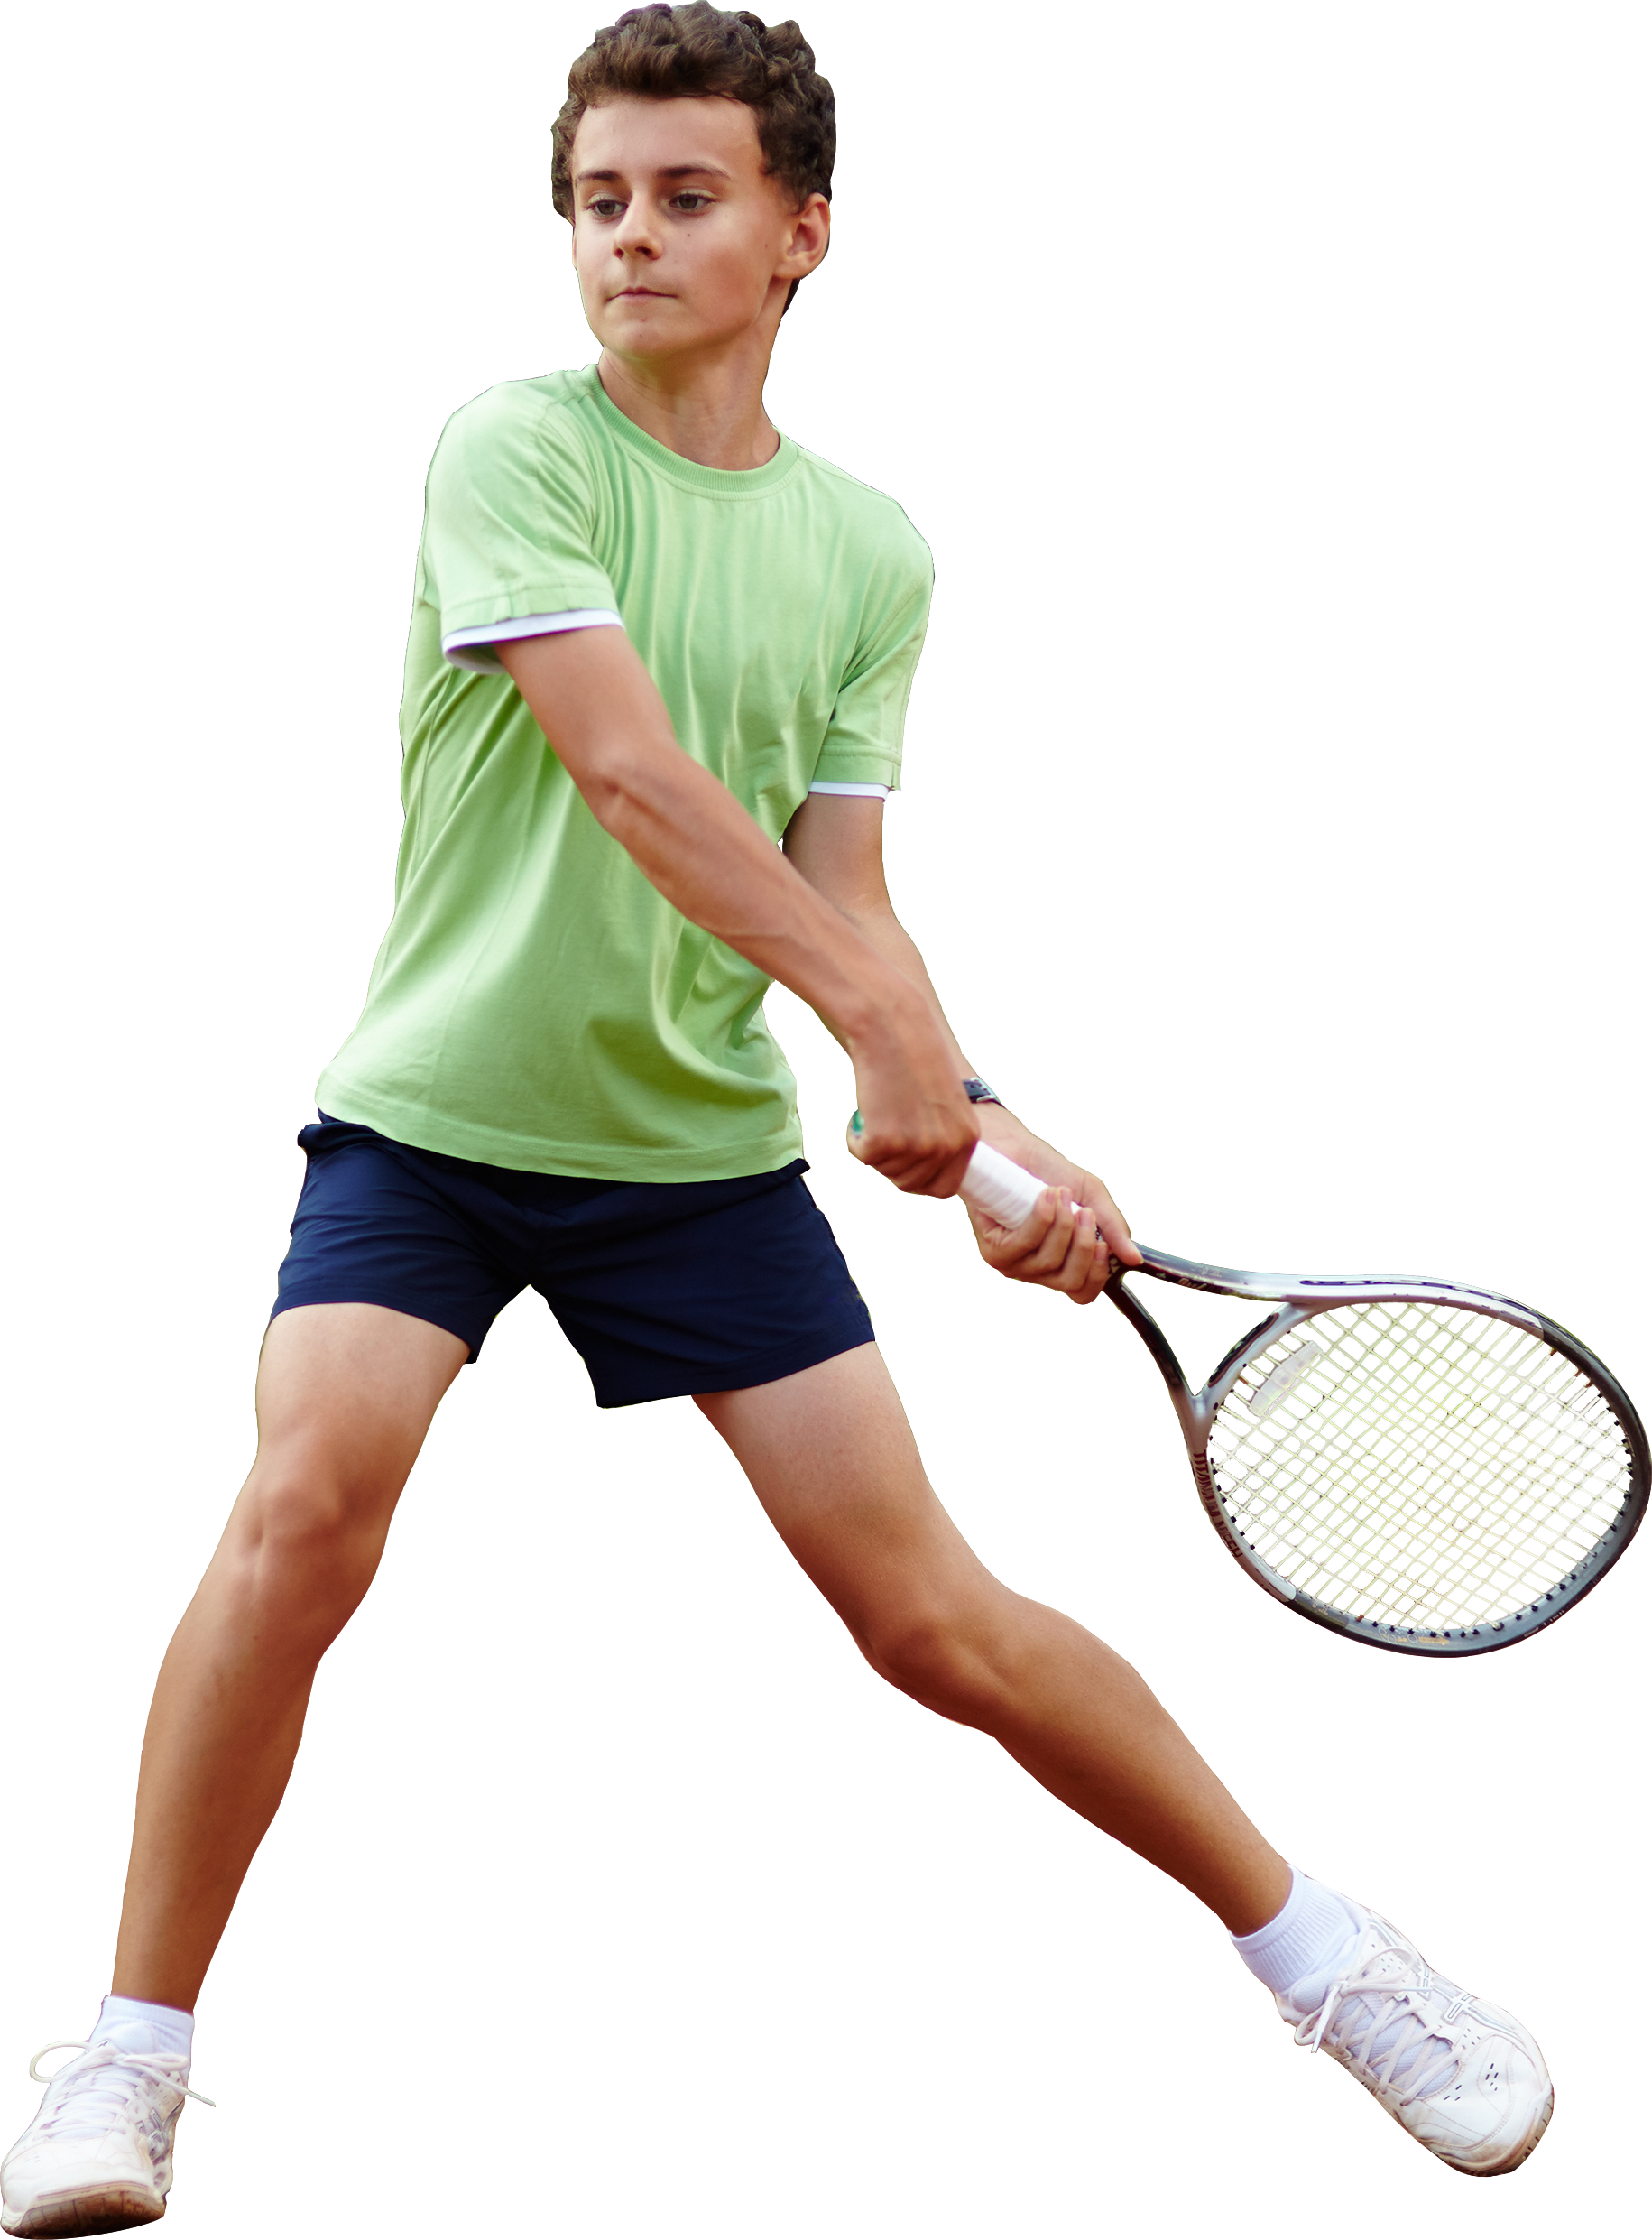 Tennis PNG images free download, tennis ball racket PNG.